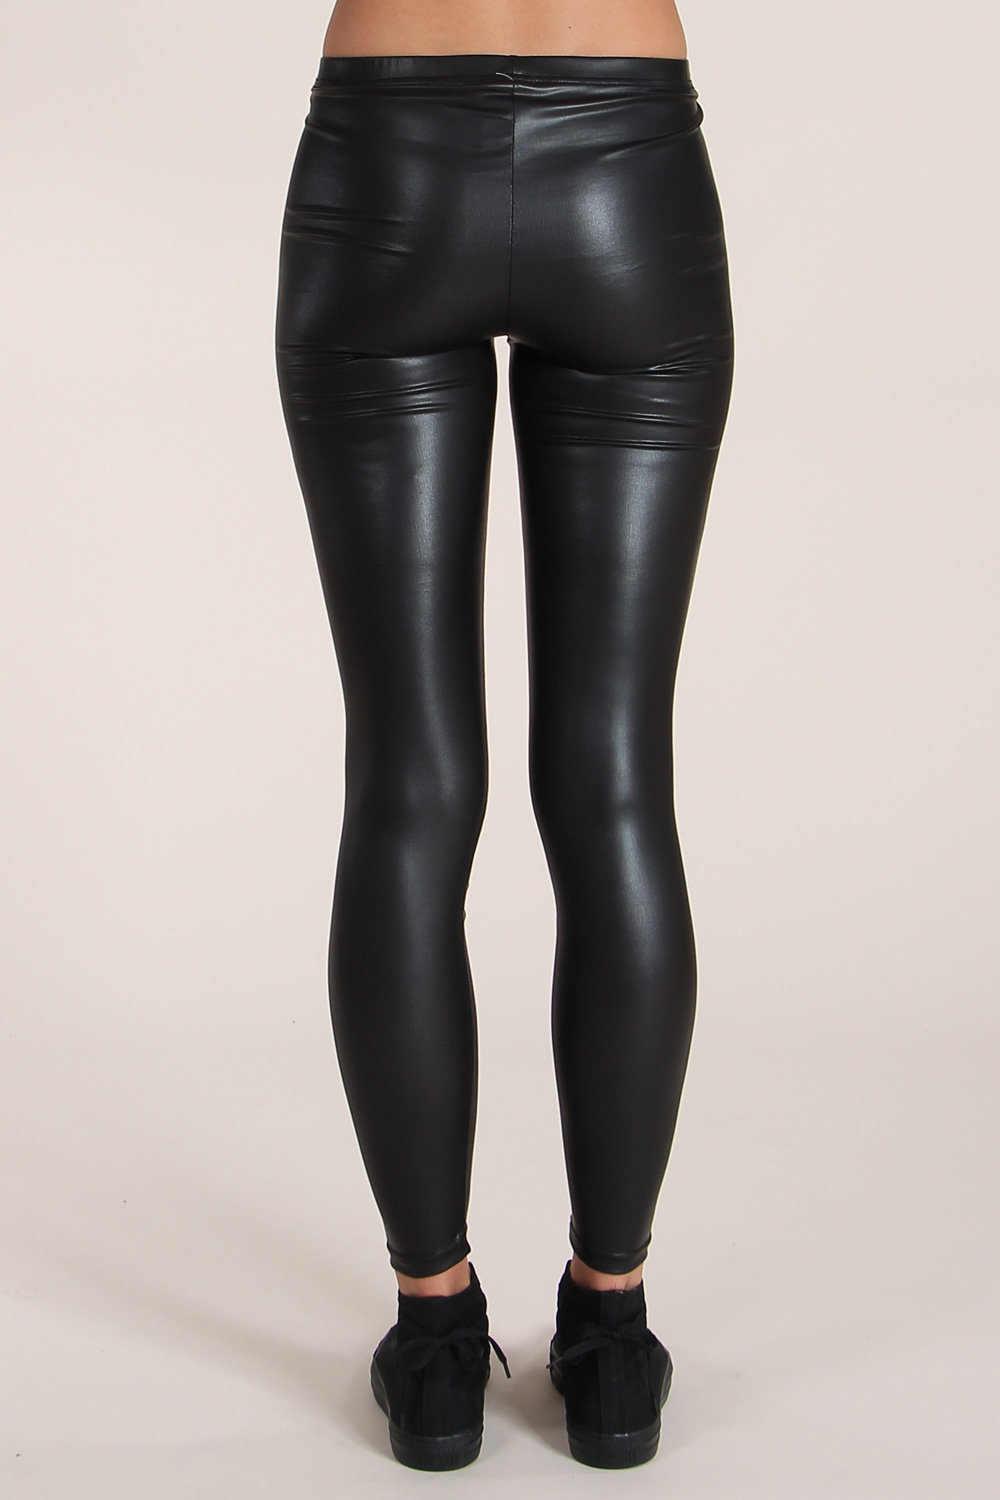 Fashion Tight Black Leather Pants For Women - Buy Tight ...